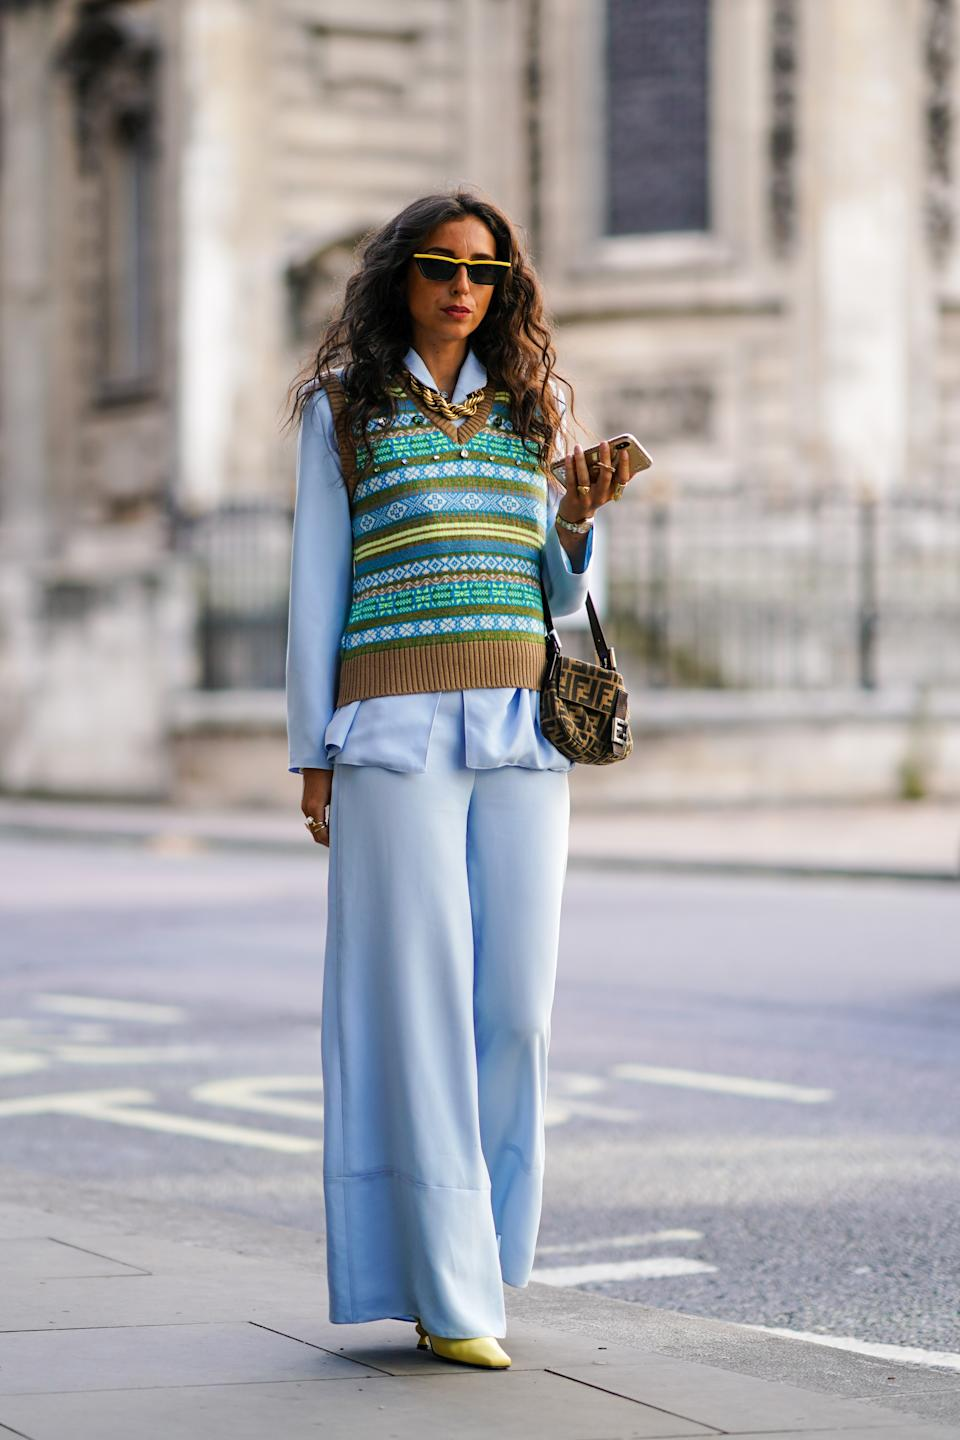 Gabriella Berdugo is seen wearing a pale blue two-set layered with a statement knit and Fendi bag. [Photo: Getty Images]